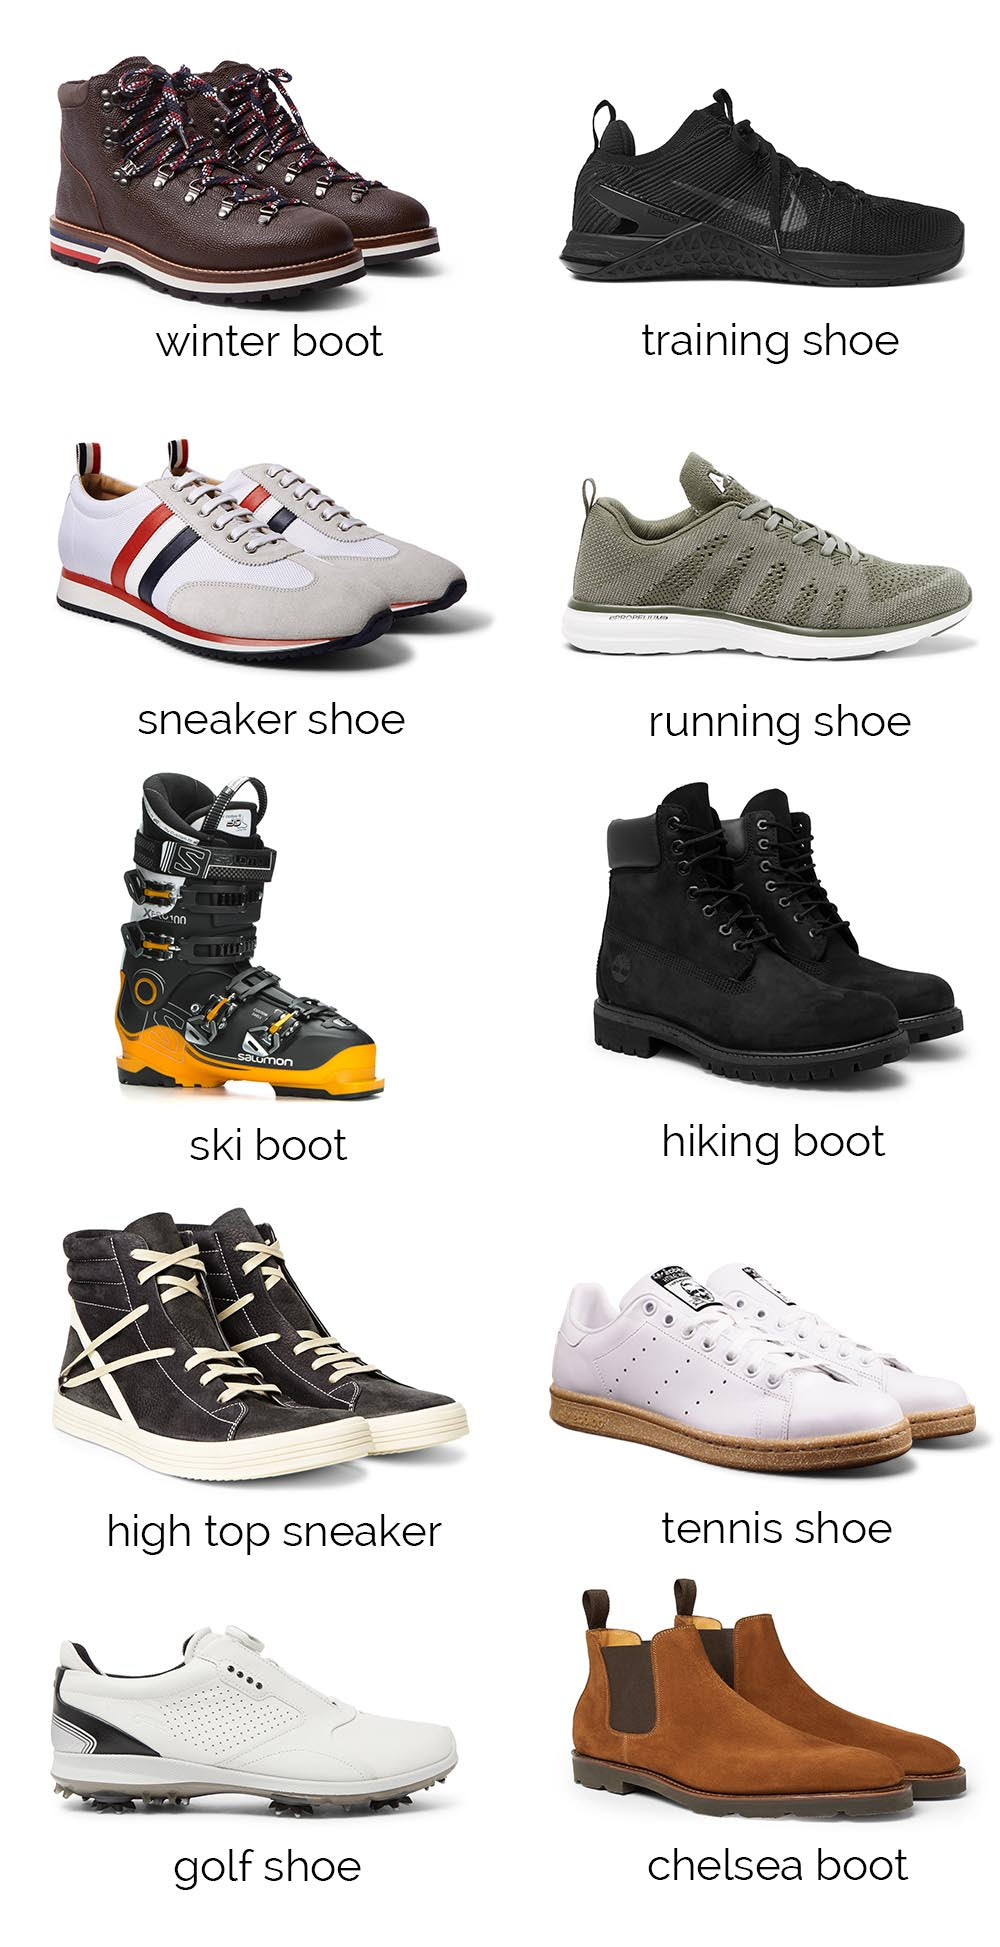 Original Profile Shoe Suggestions